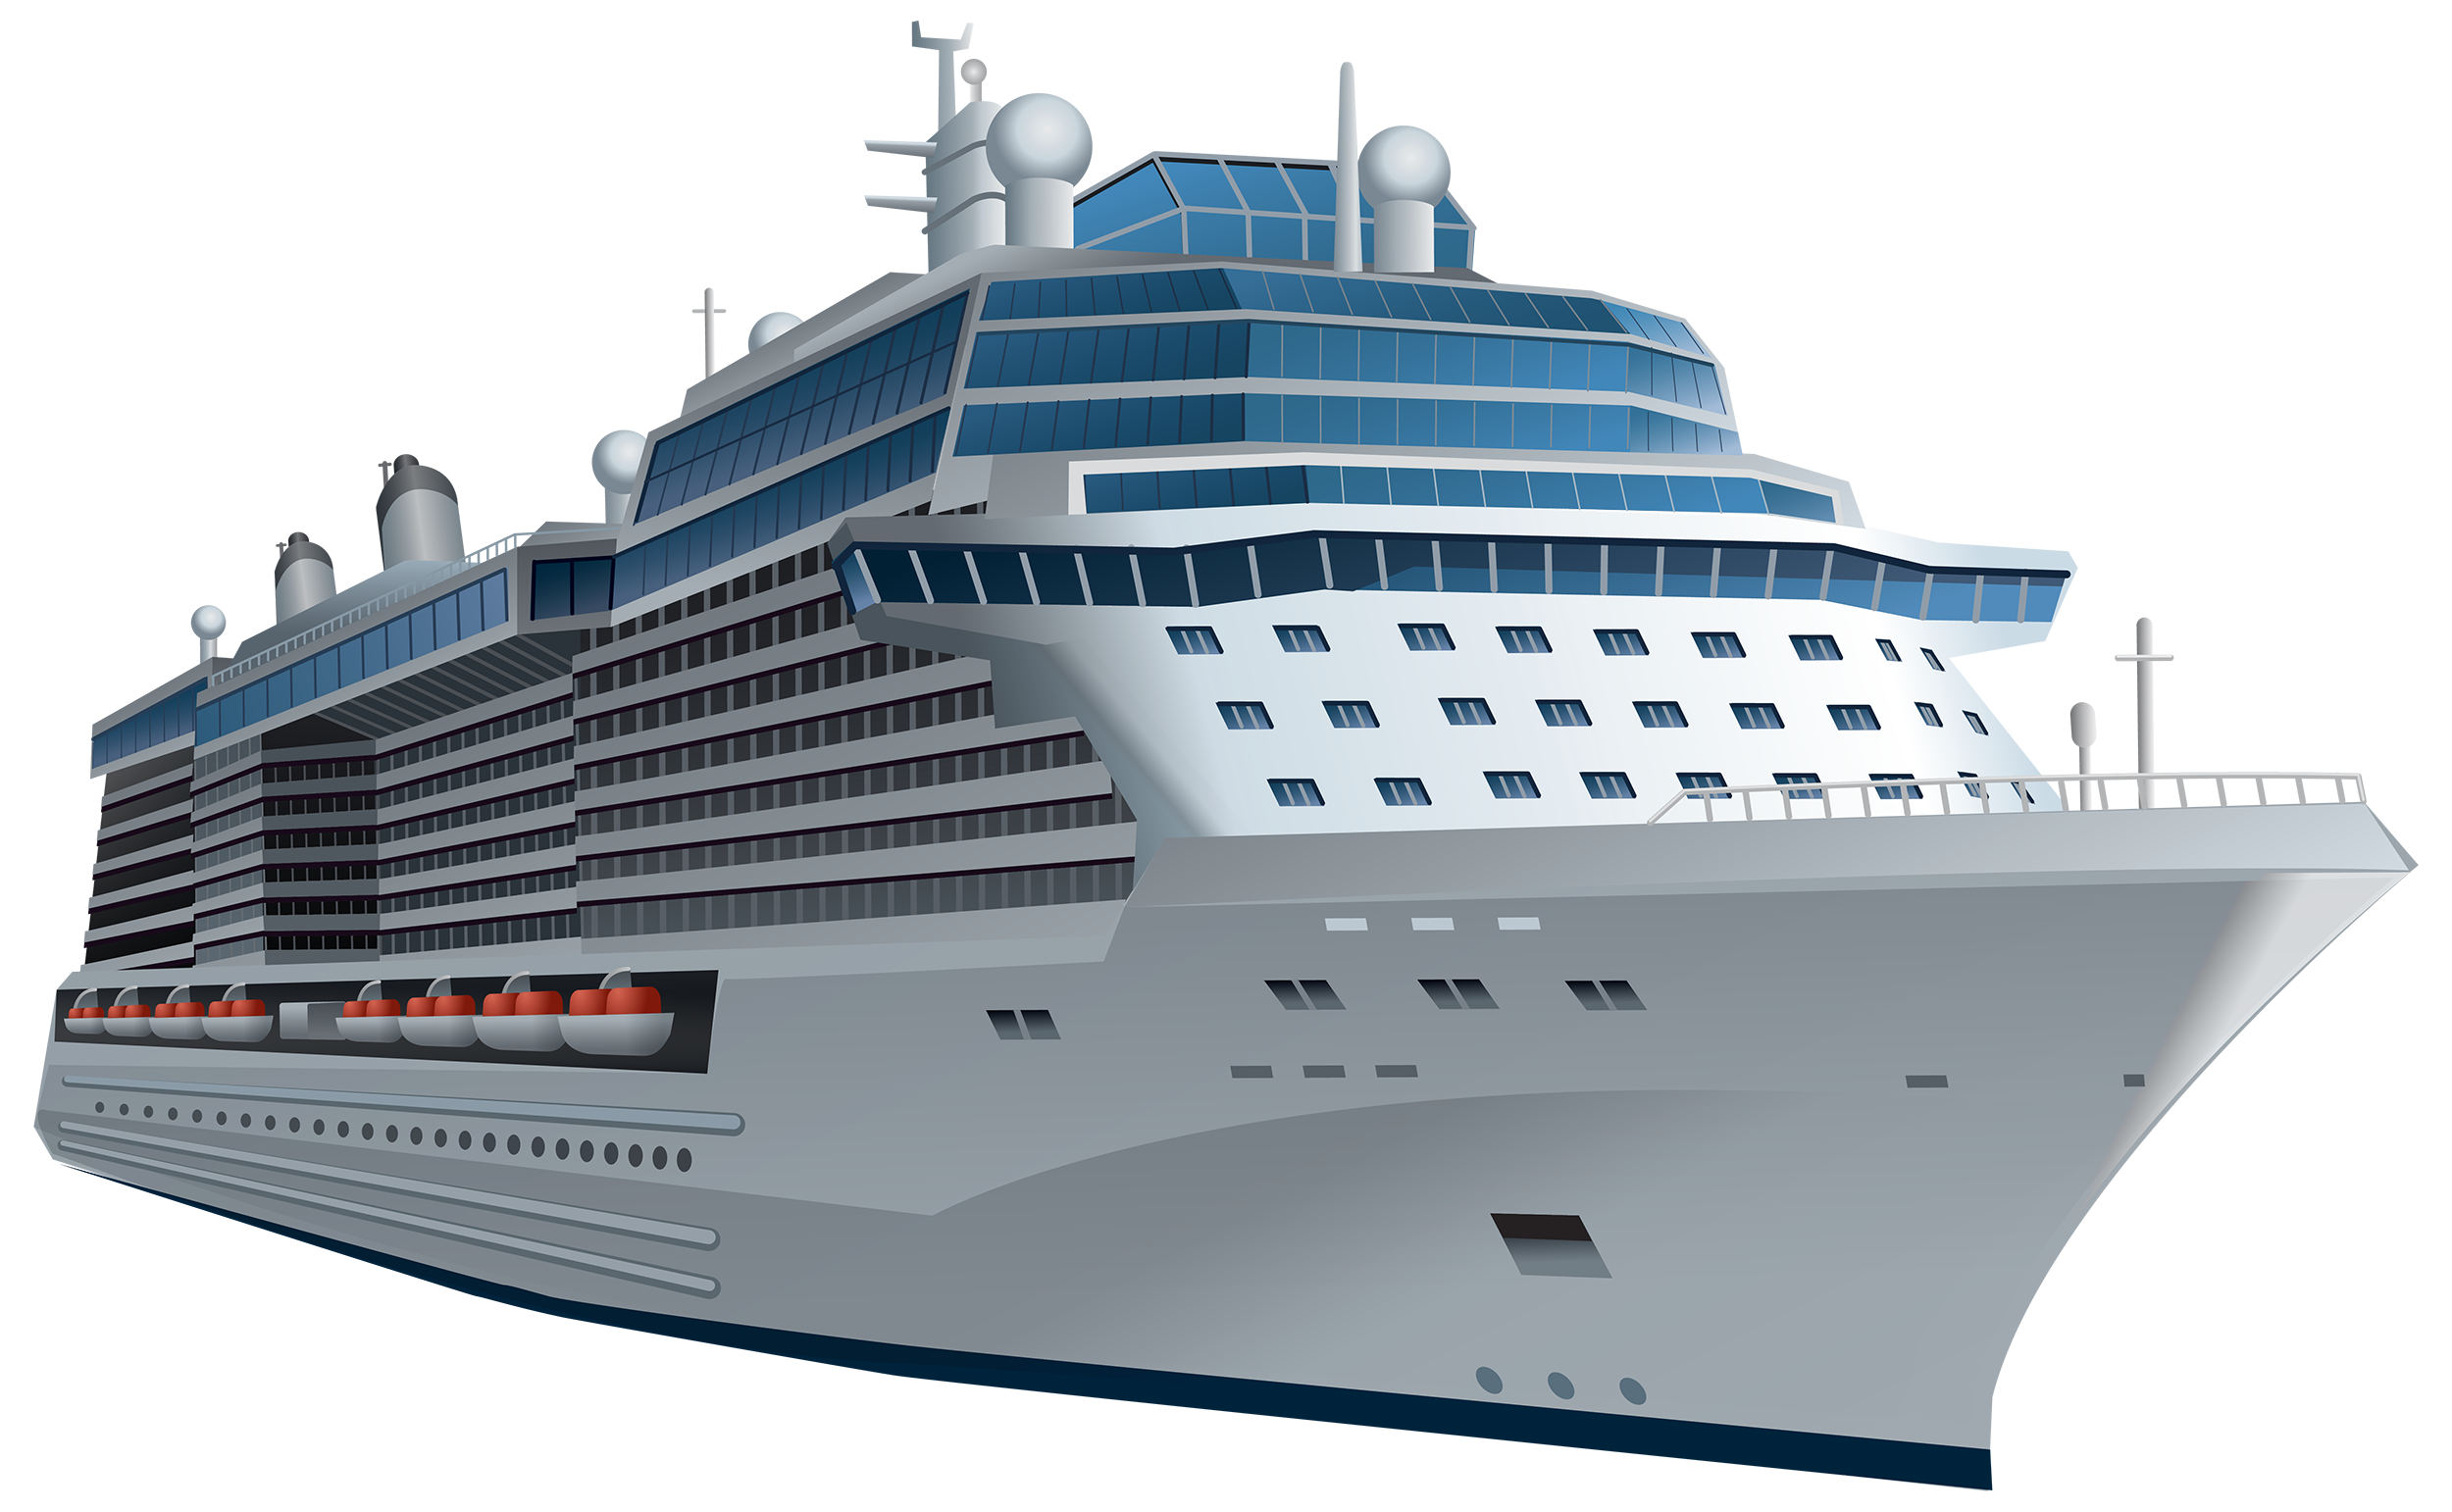 White ship png best. Boating clipart cruise